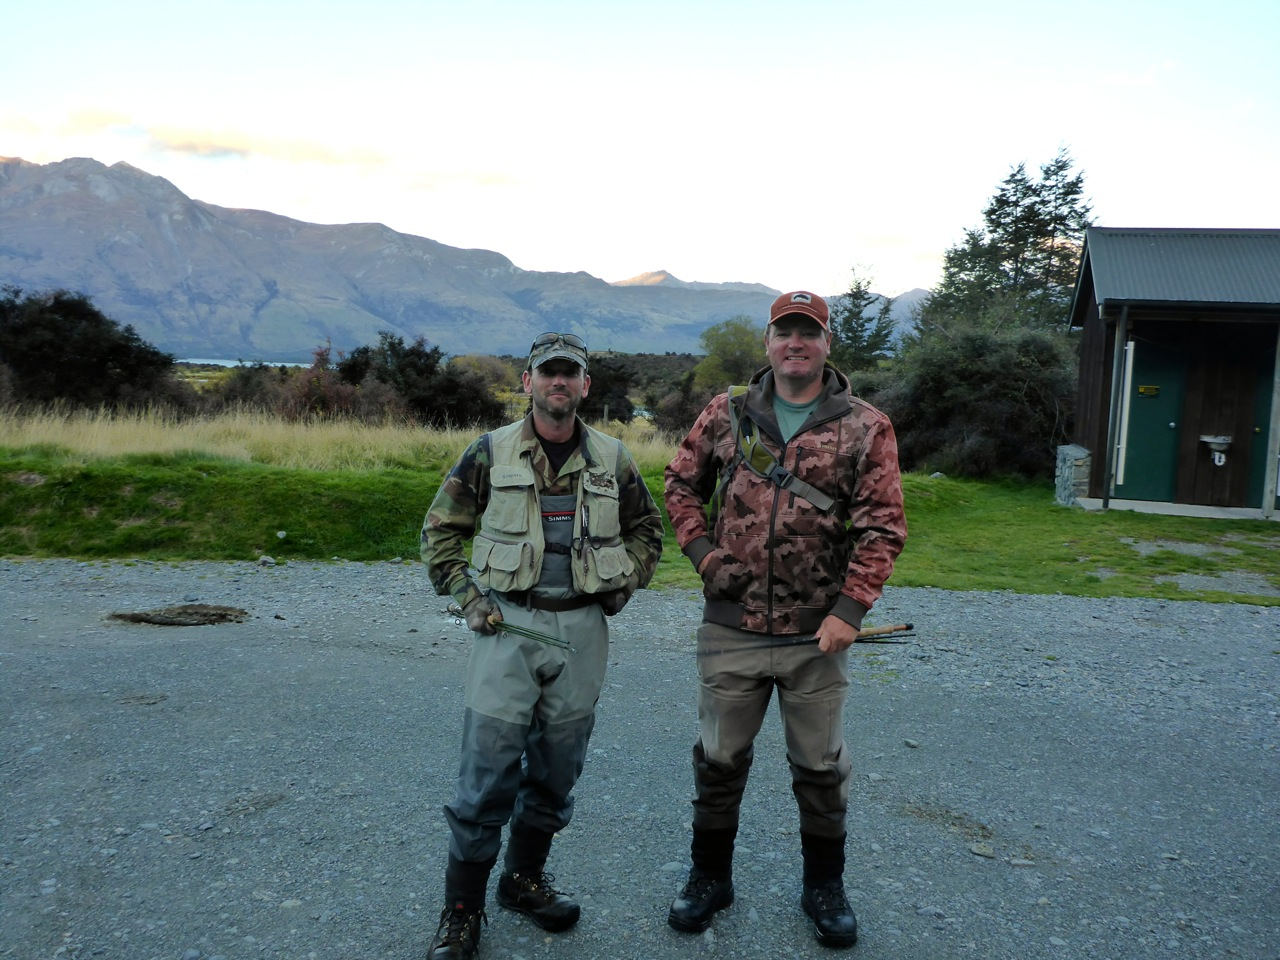 The start of a day in the wilderness with Chris Dore. We're looking for big fish!